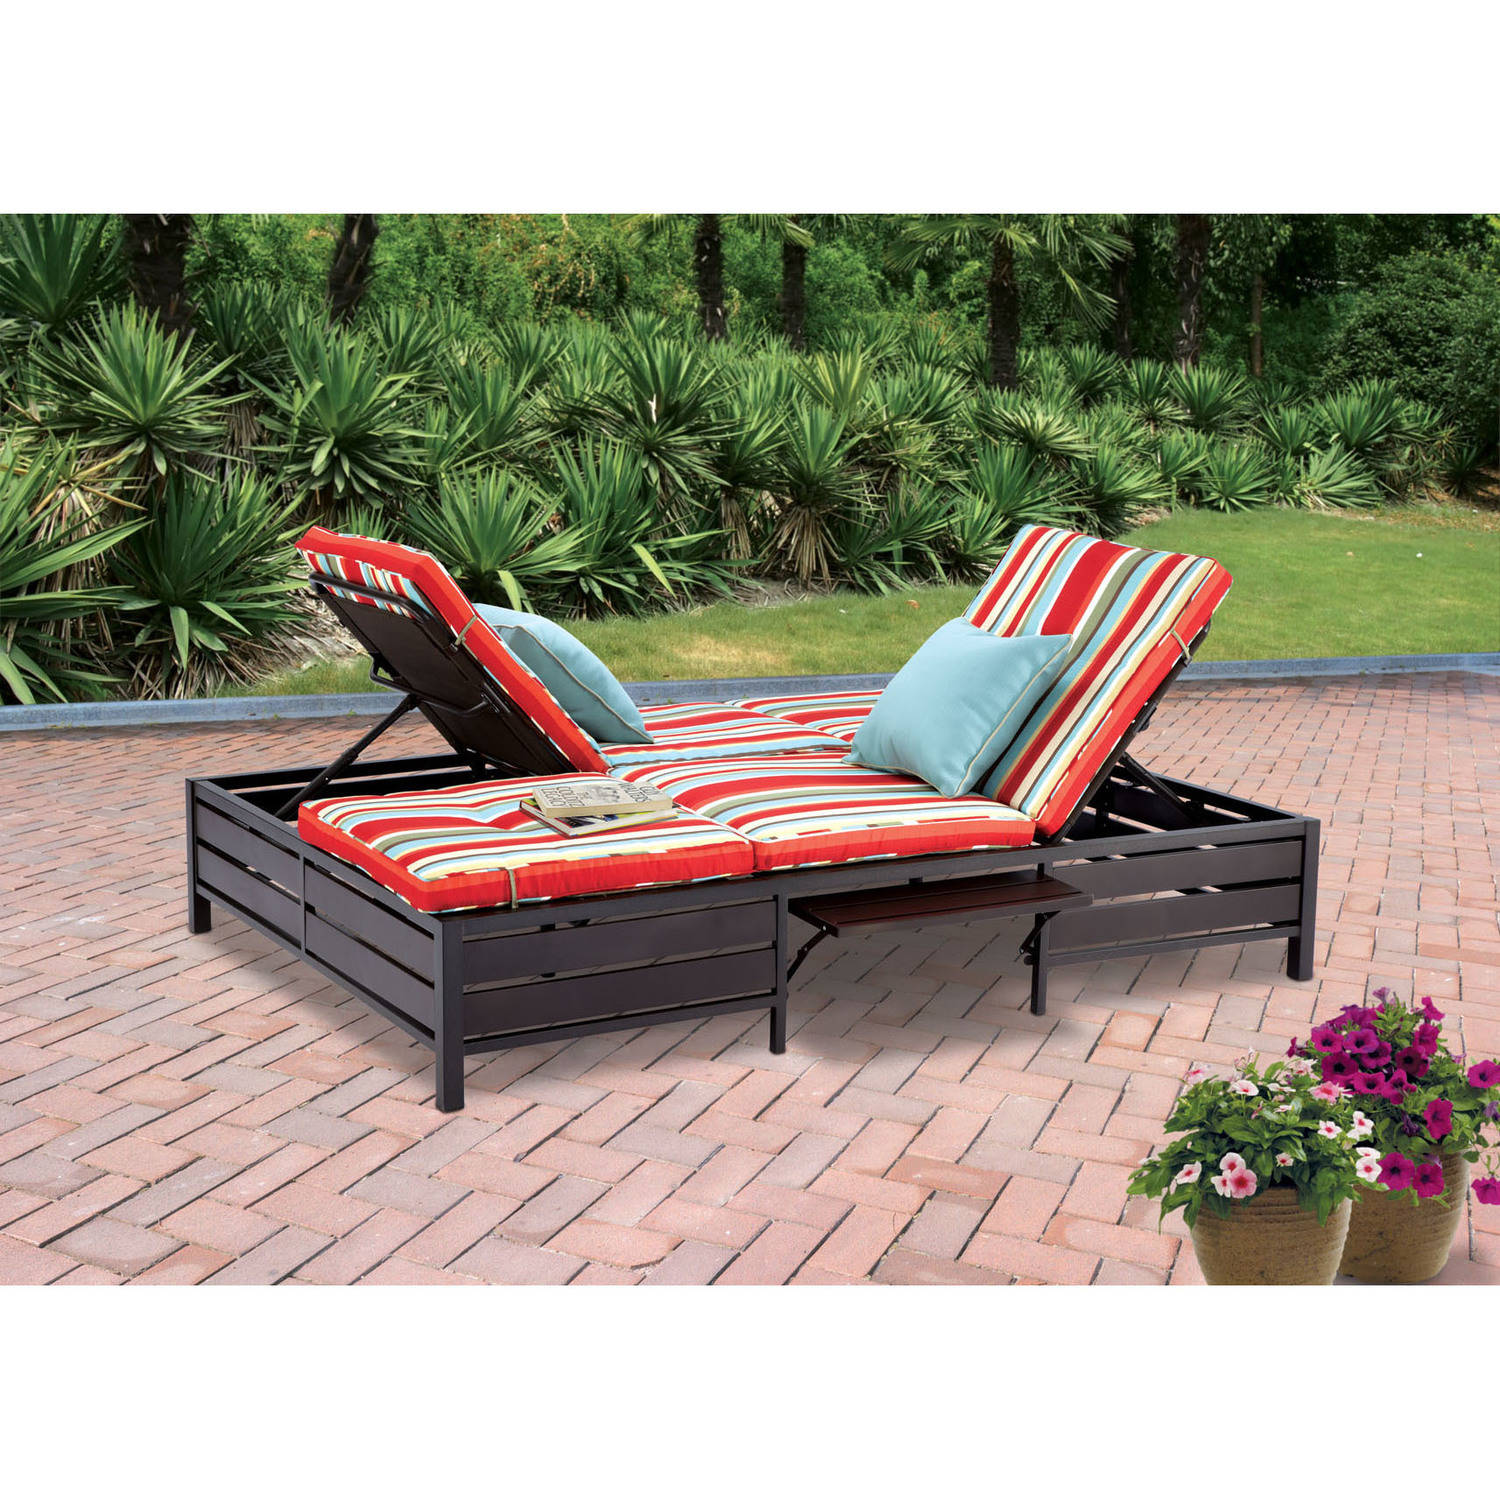 Mainstays Double Chaise Lounger Stripe Seats 2  sc 1 st  Walmart : walmart chaise - Sectionals, Sofas & Couches